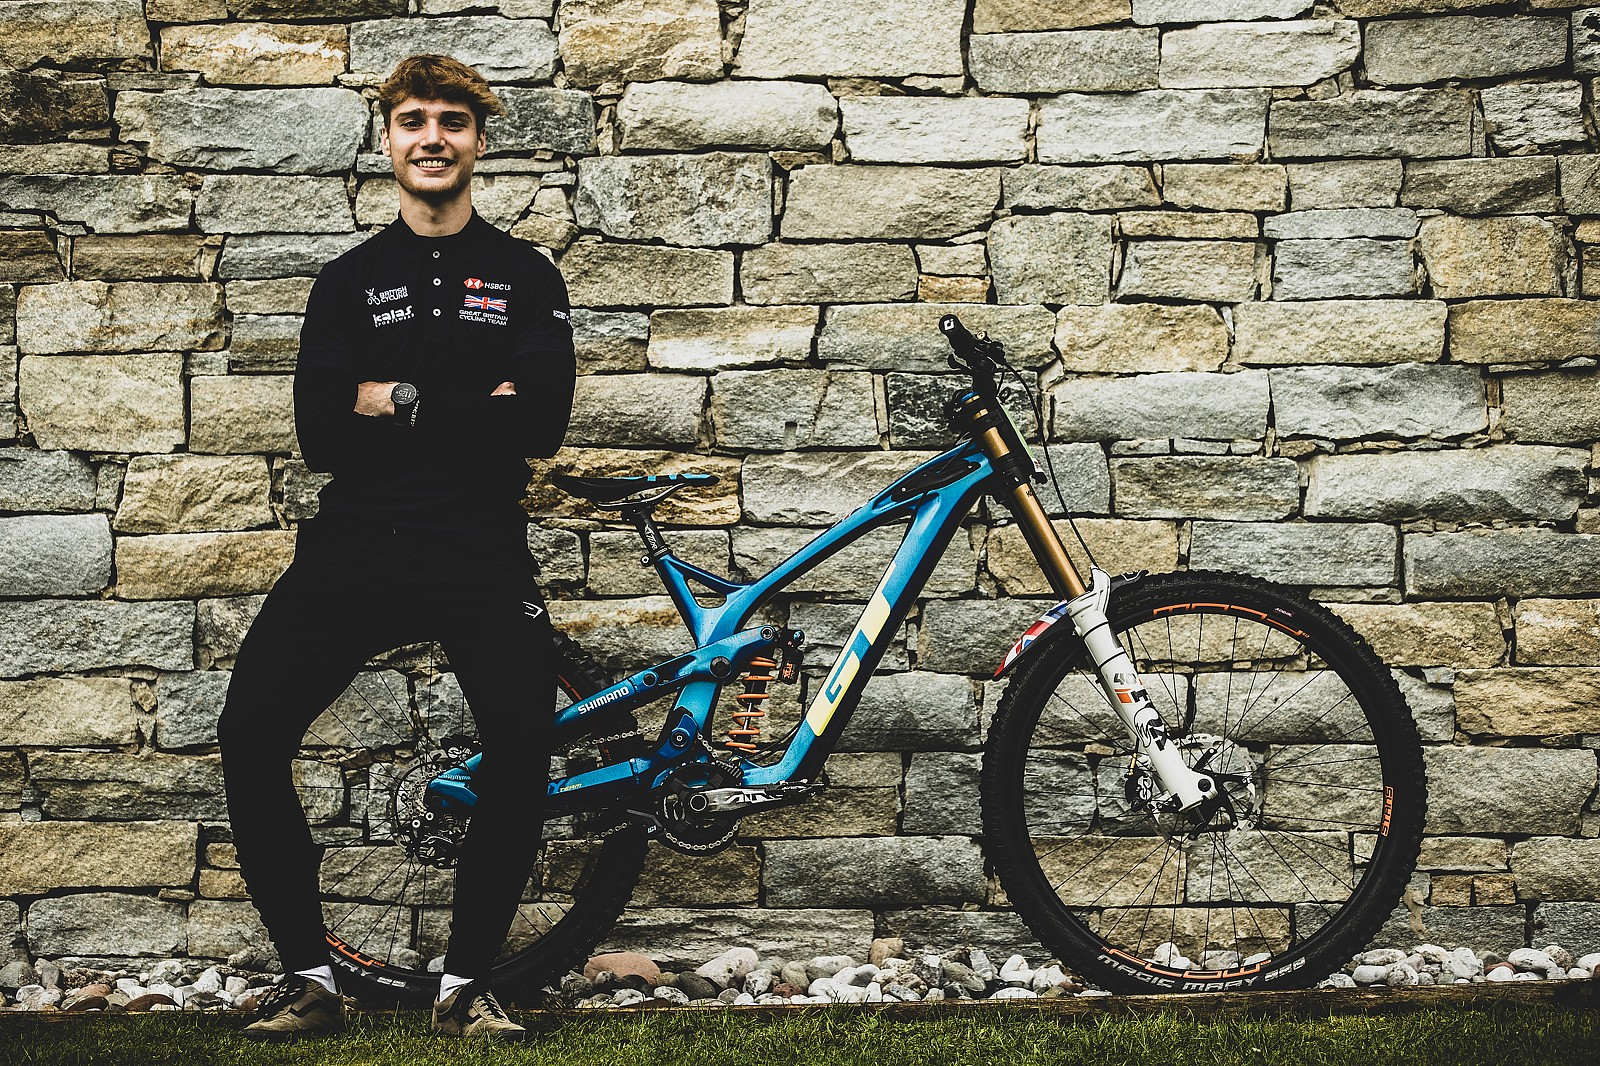 Ethan Craik, Ready for the Wet - WORLD CHAMPS BIKES - GT Factory Racing - Mountain Biking Pictures - Vital MTB